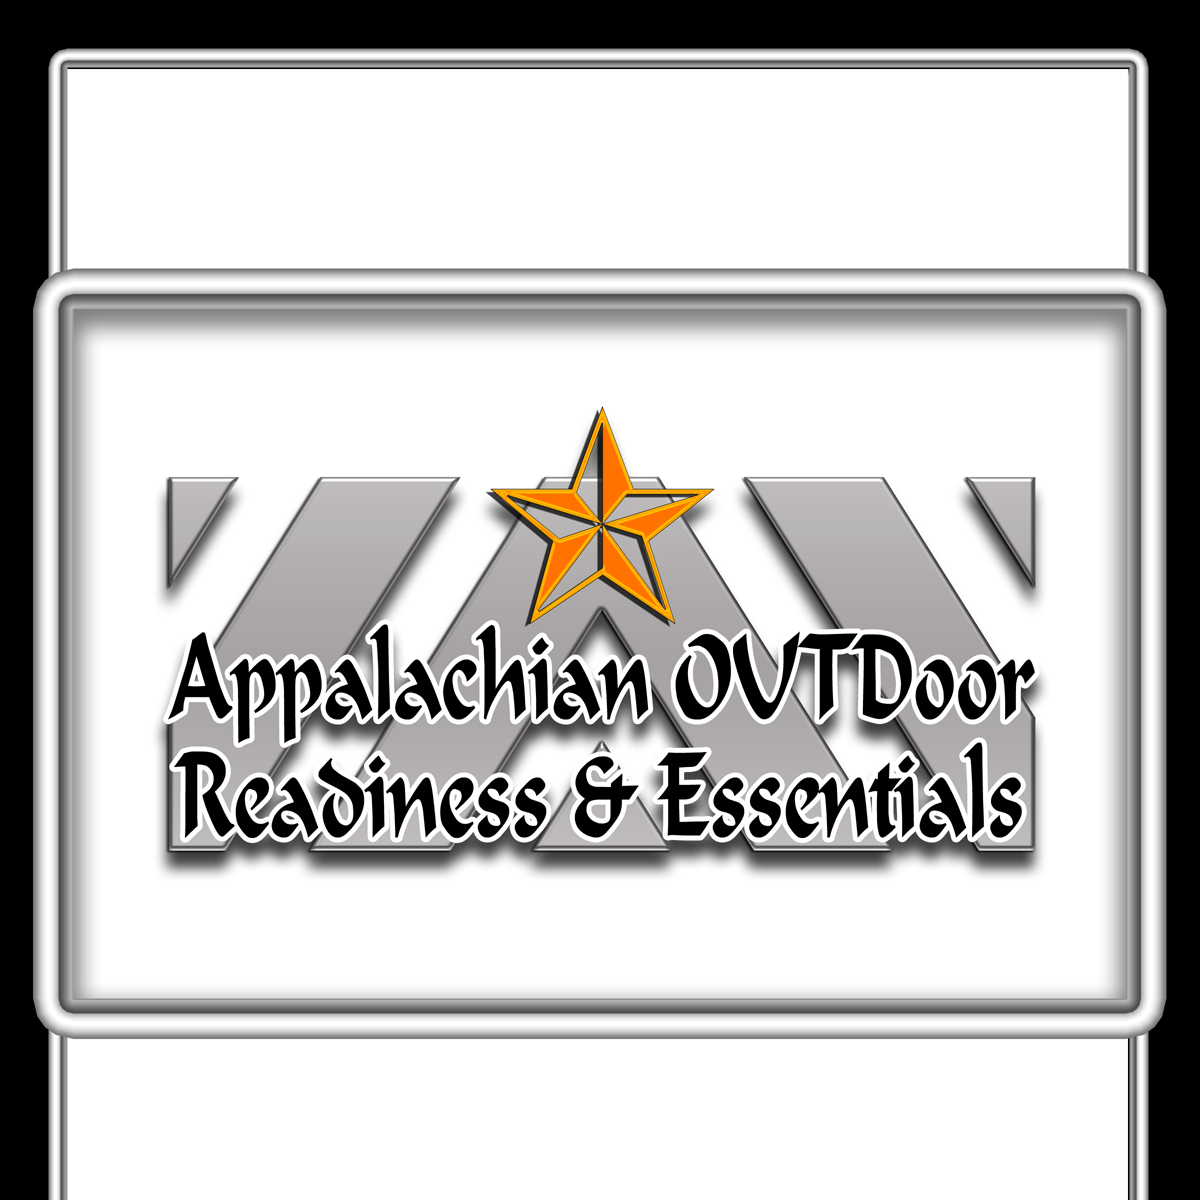 Logo Design by MITUCA ANDREI - Entry No. 3 in the Logo Design Contest Imaginative Logo Design for Appalachian Outdoor Readiness & Essentials.